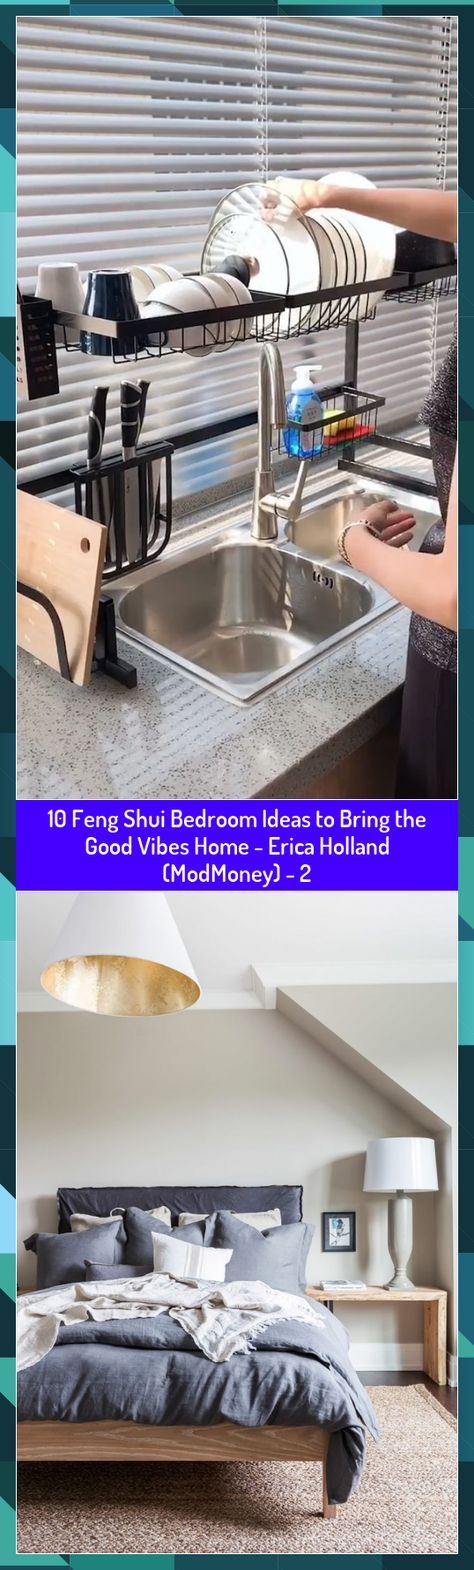 10 Feng Shui Bedroom Ideas to Bring the Good Vibes Home - Erica Holland (ModMoney) - 2 #Bedroom #bring #Erica #Feng #Good #Holland #Home #Ideas #ModMoney #Shui #vibes